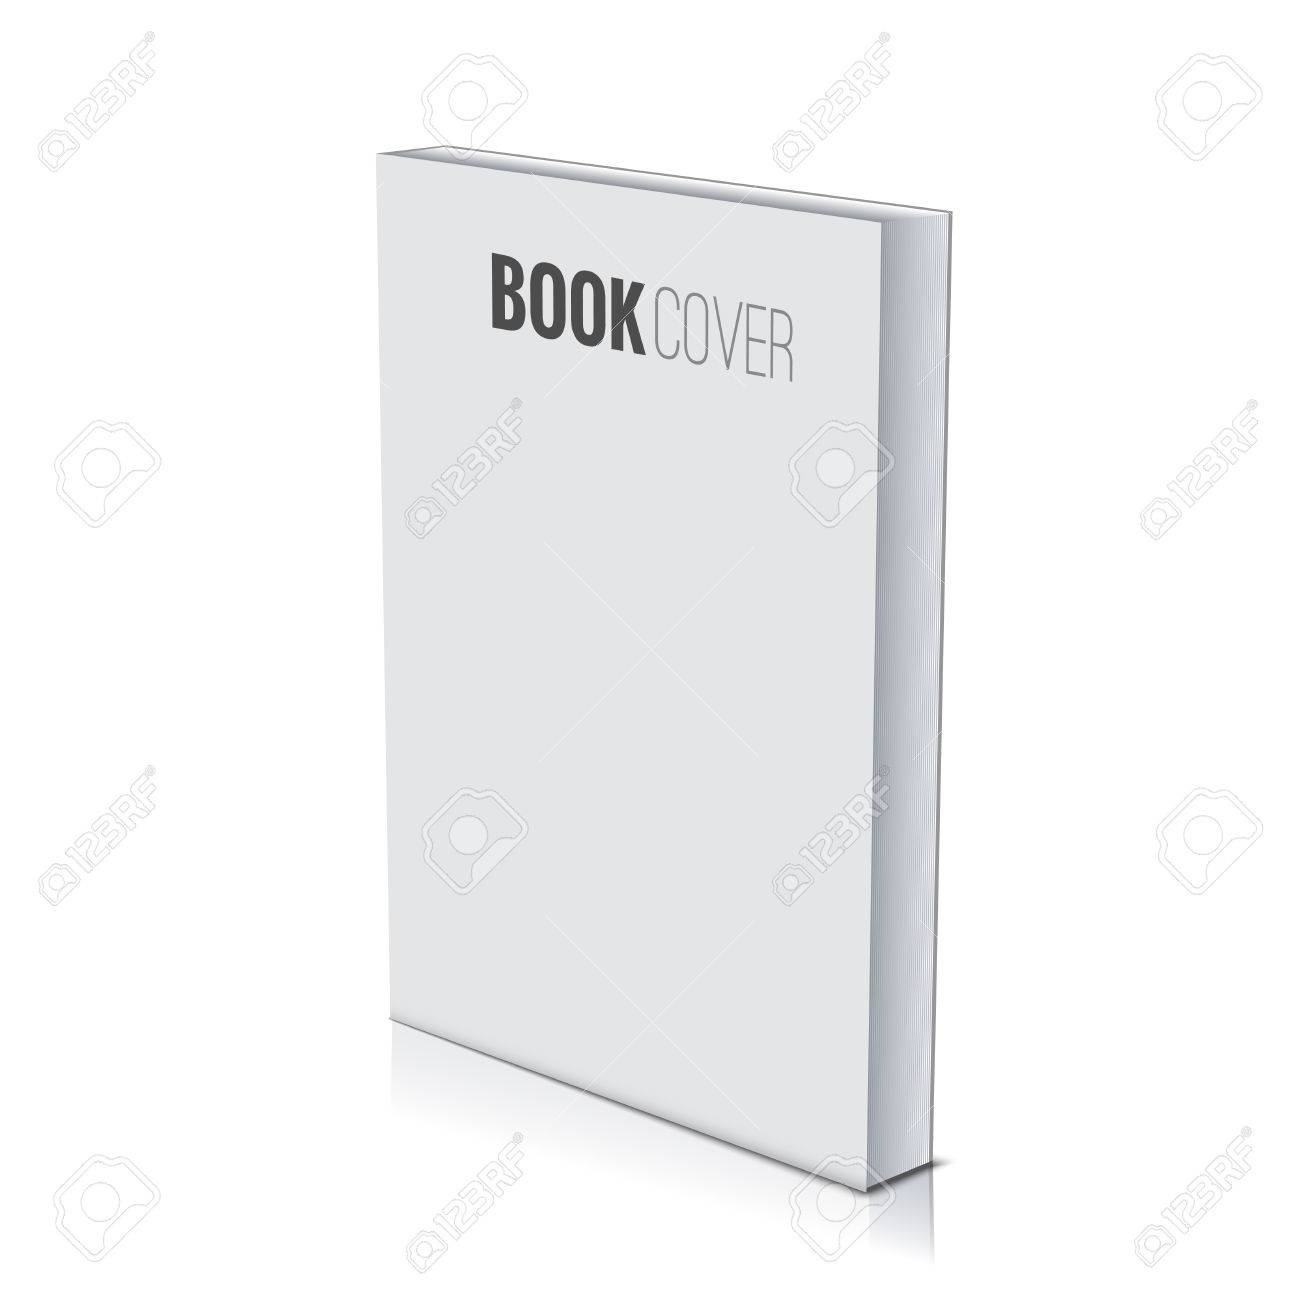 3d Book cover paperback page document template, blank isolated on white. - 57757143